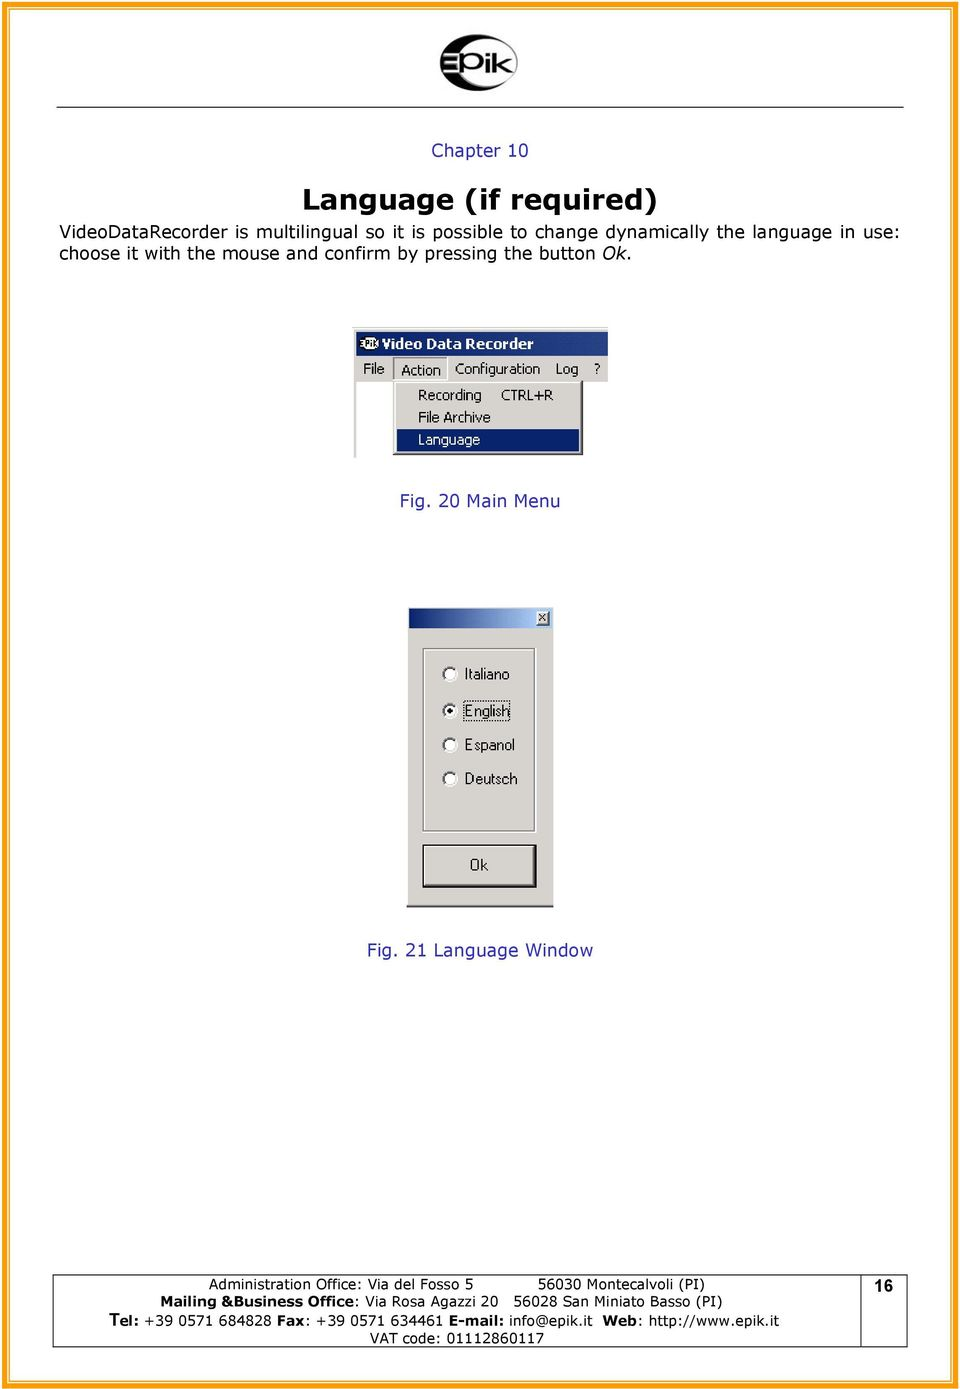 language in use: choose it with the mouse and confirm by